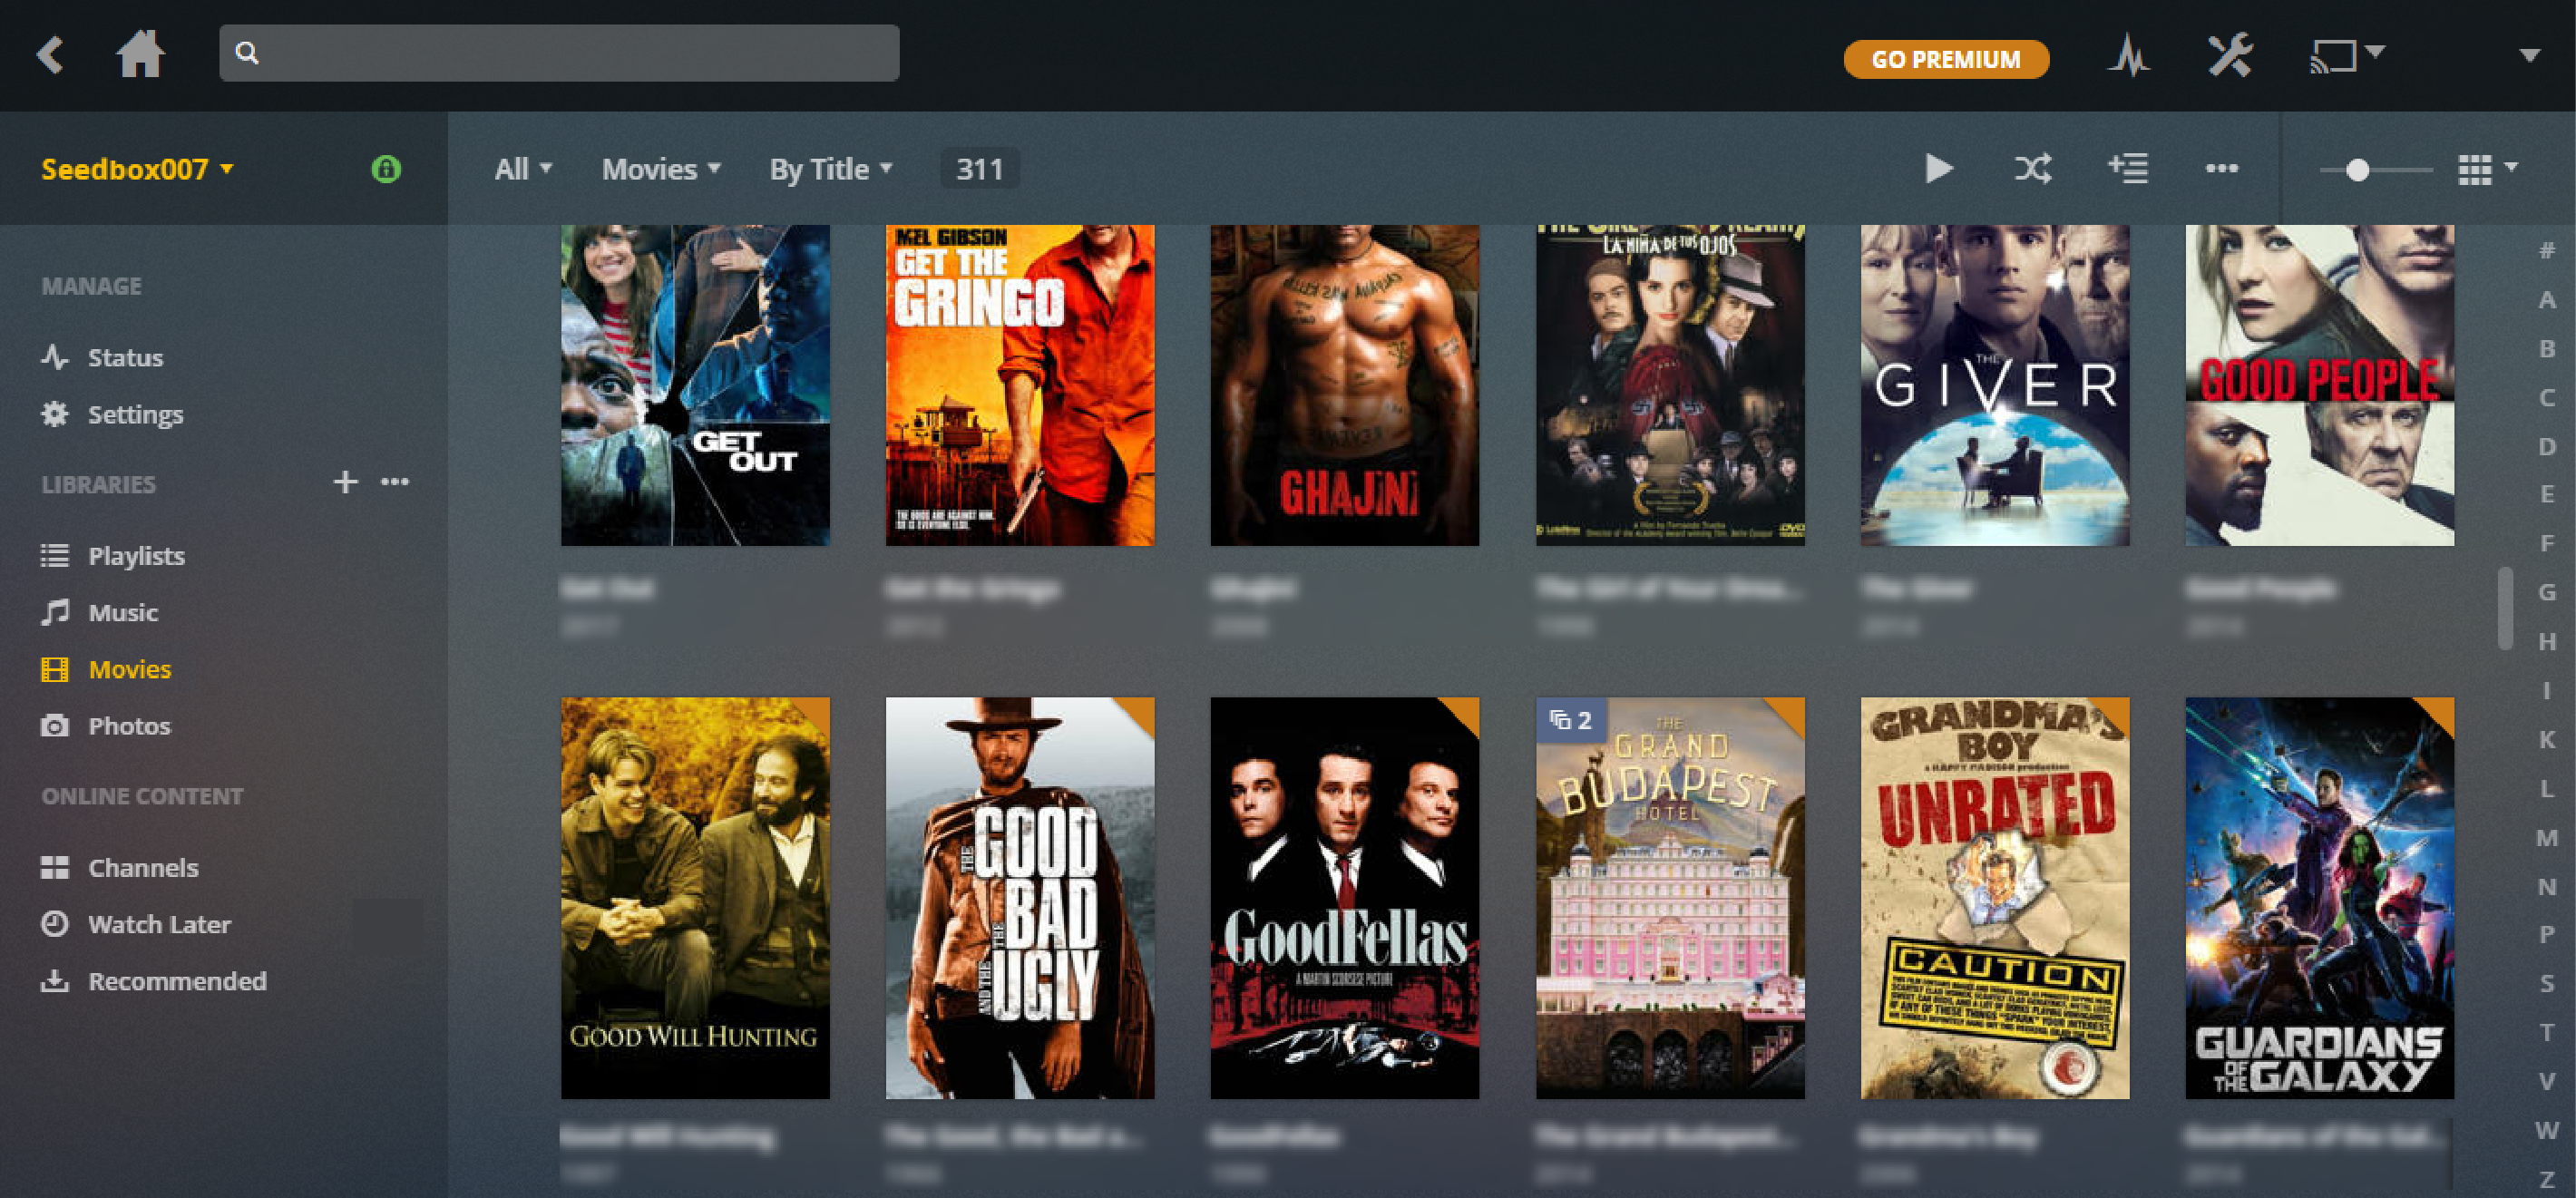 Plex Media Server Ultimate Guide 5 Minutes To Mastery Single Receptacle Wiring Diagram Enjoy On Your Once Finishes Scanning All It Will Organize Display With Cool Posters And Descriptions